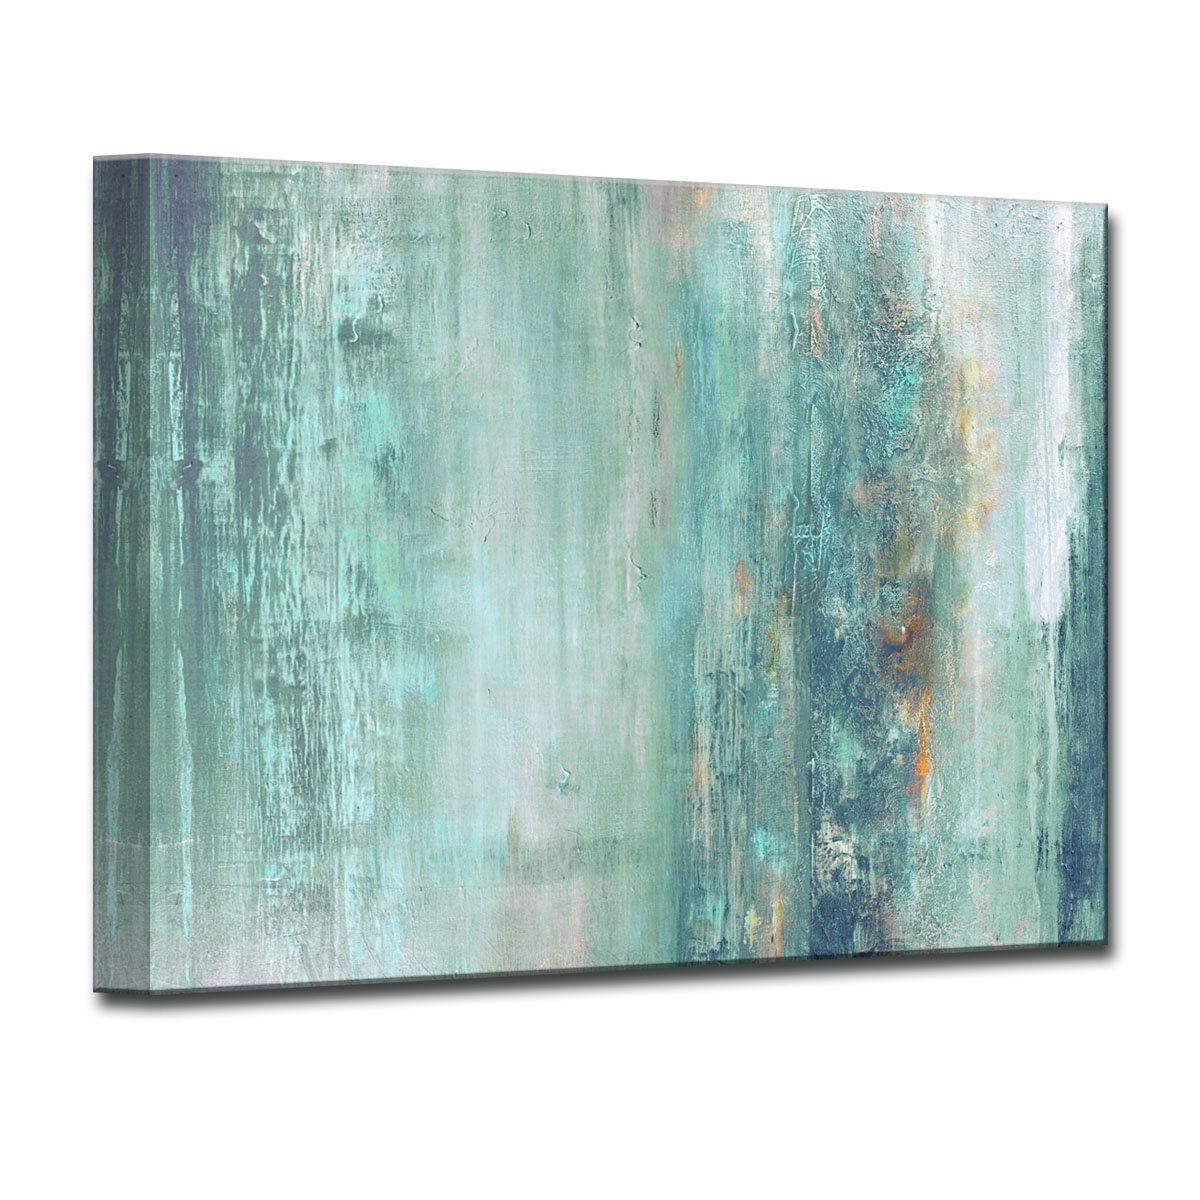 Beachcrest Home 'abstract Spa' Framed Graphic Art Print On Canvas Pertaining To Most Recent Canvas Wall Art At Wayfair (View 3 of 15)